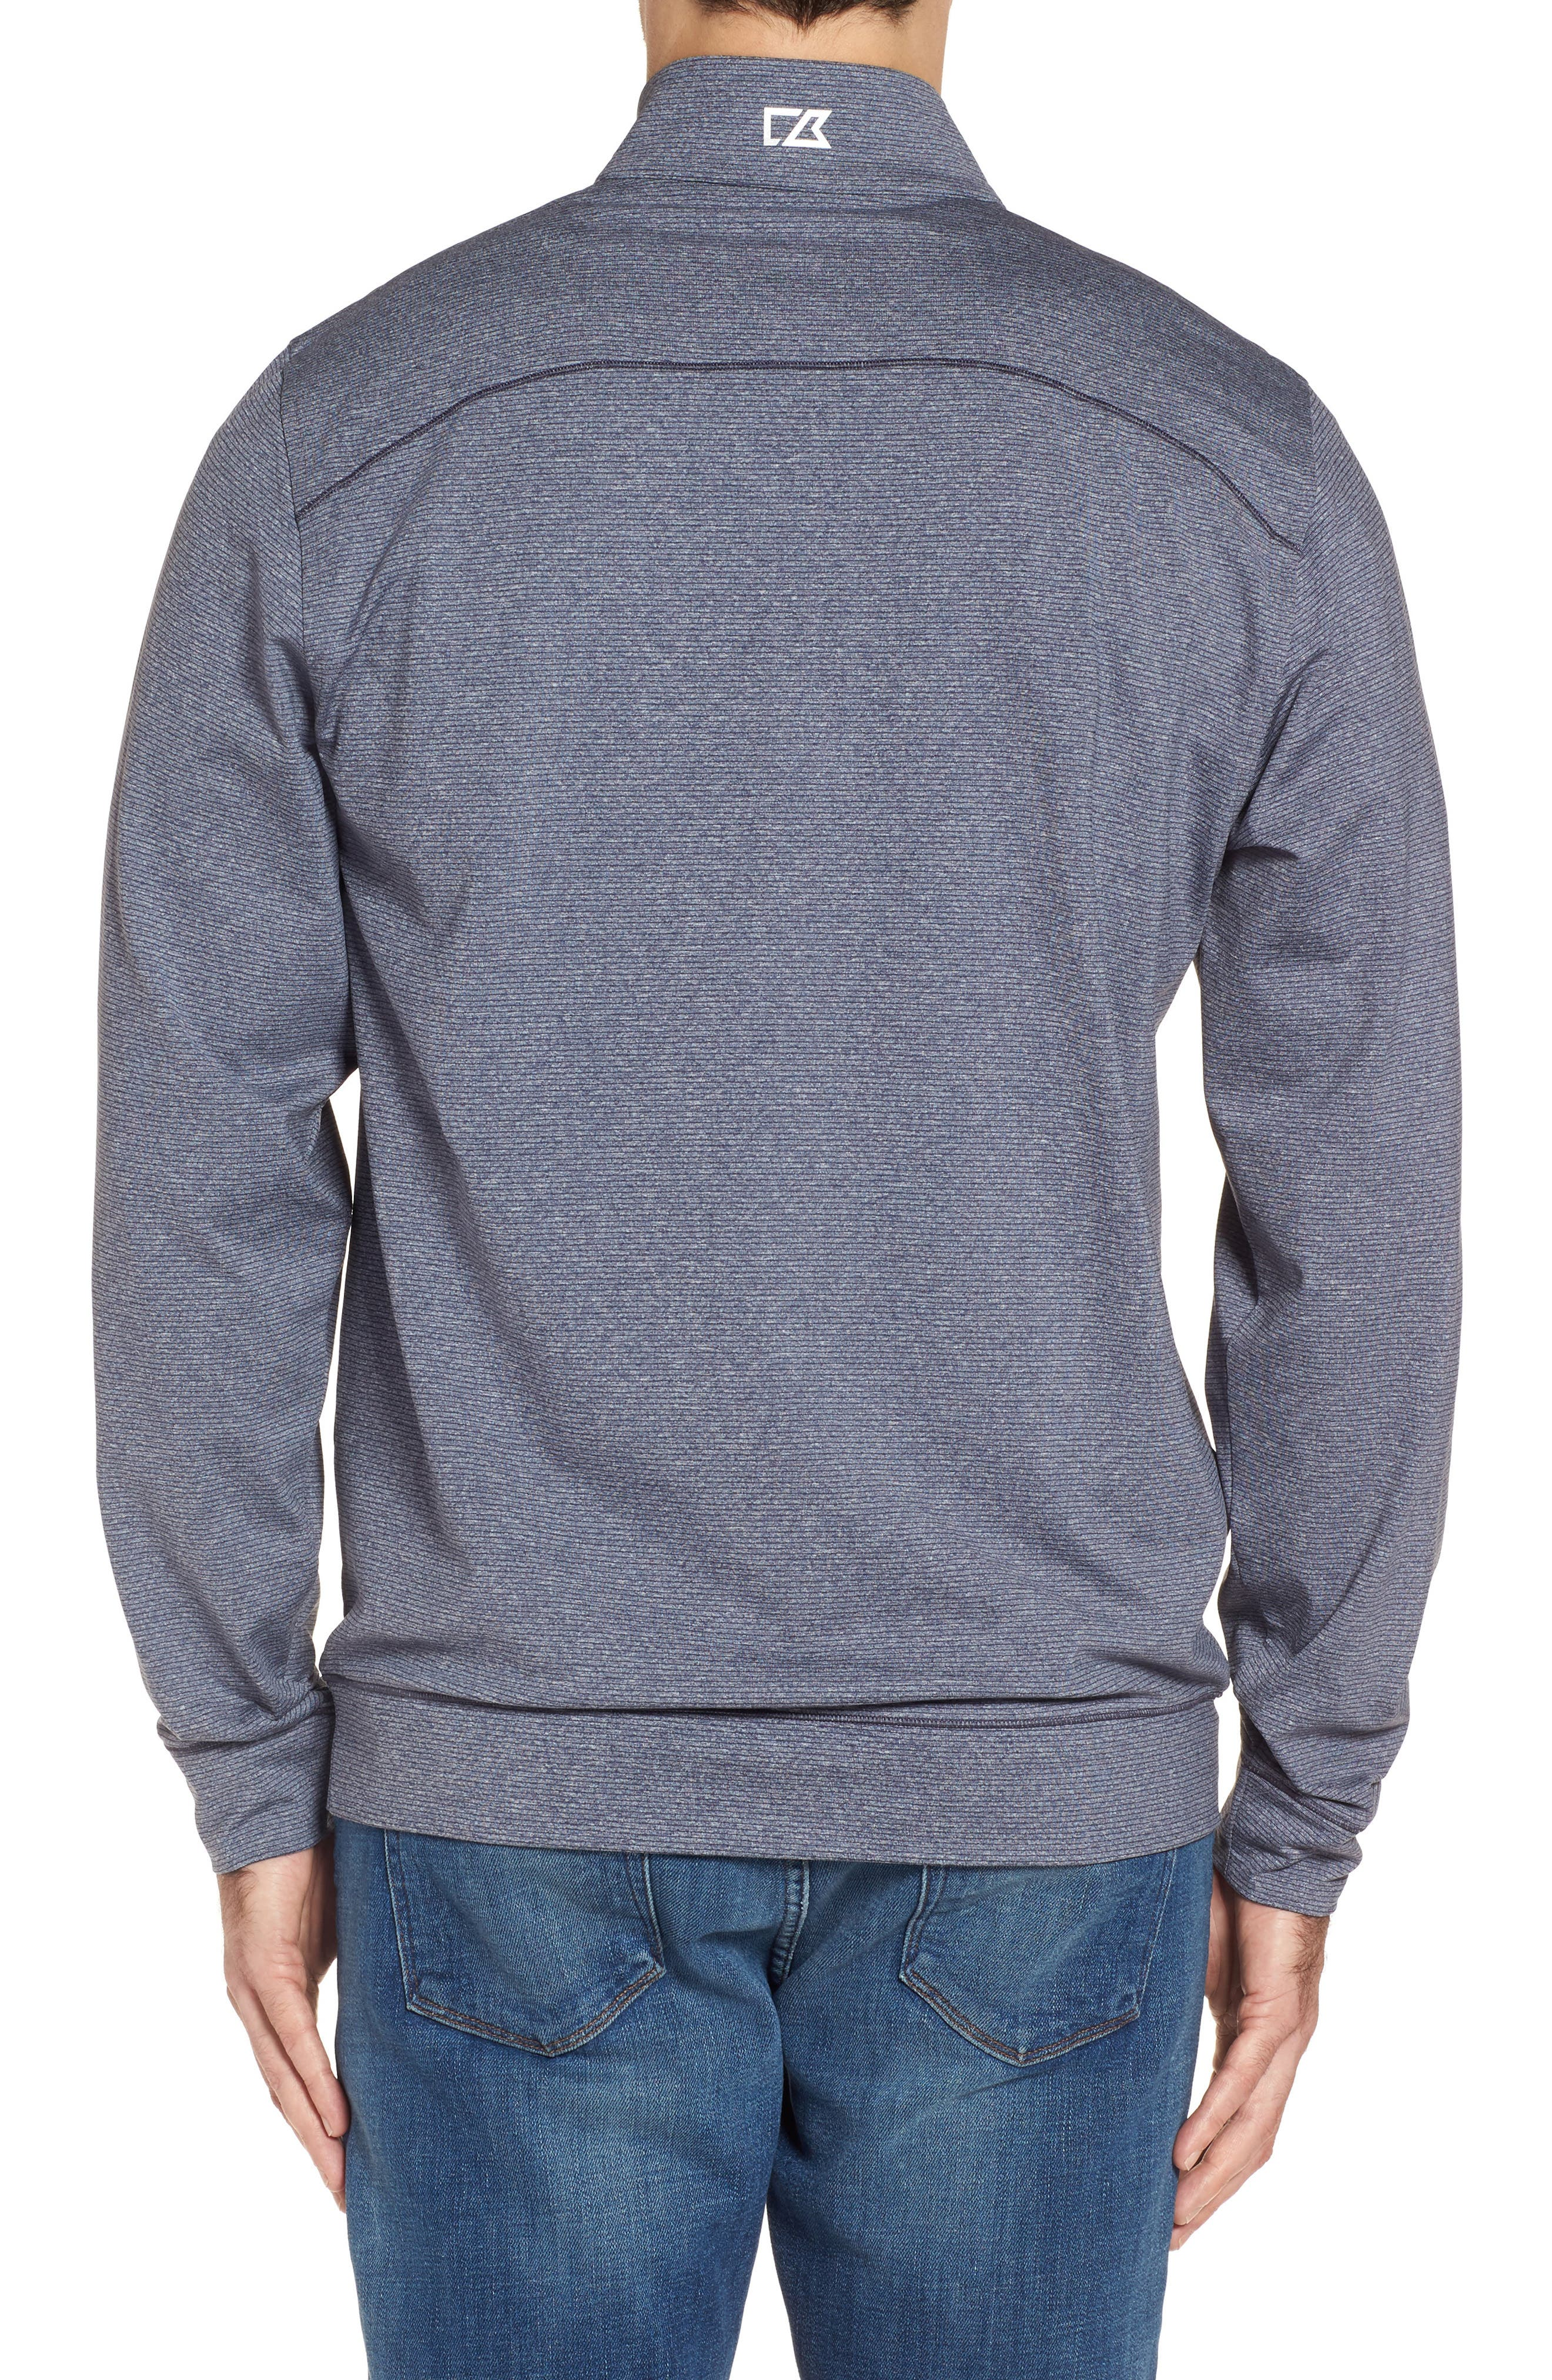 Shoreline - Los Angeles Chargers Half Zip Pullover,                             Alternate thumbnail 2, color,                             Liberty Navy Heather